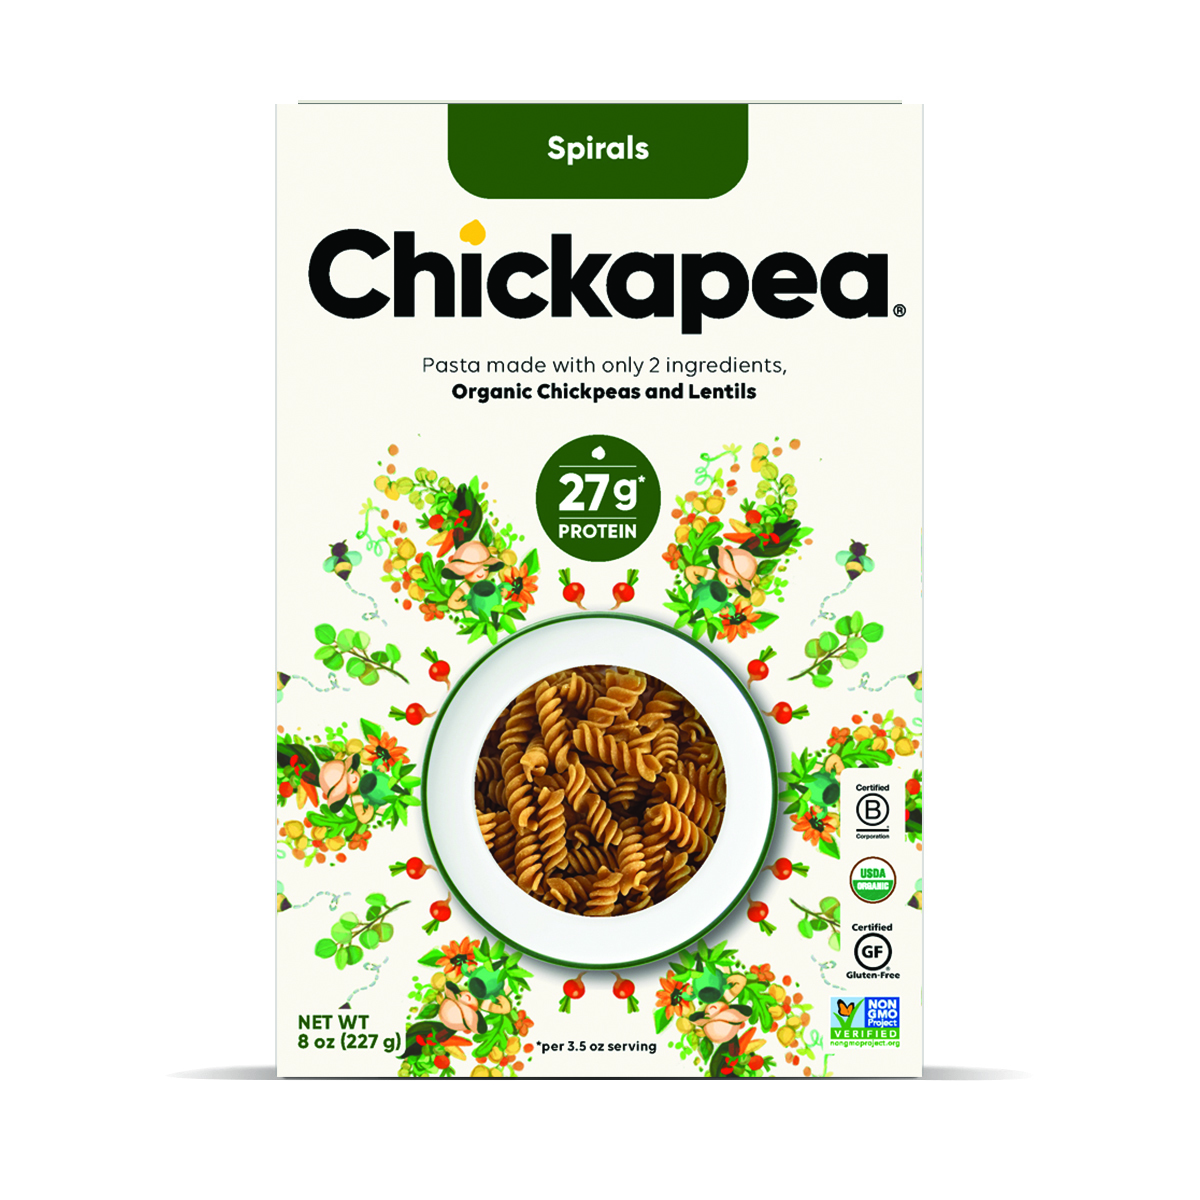 ORGANIC CHICKPEAS AND LENTILS SPIRALS | The Natural Products